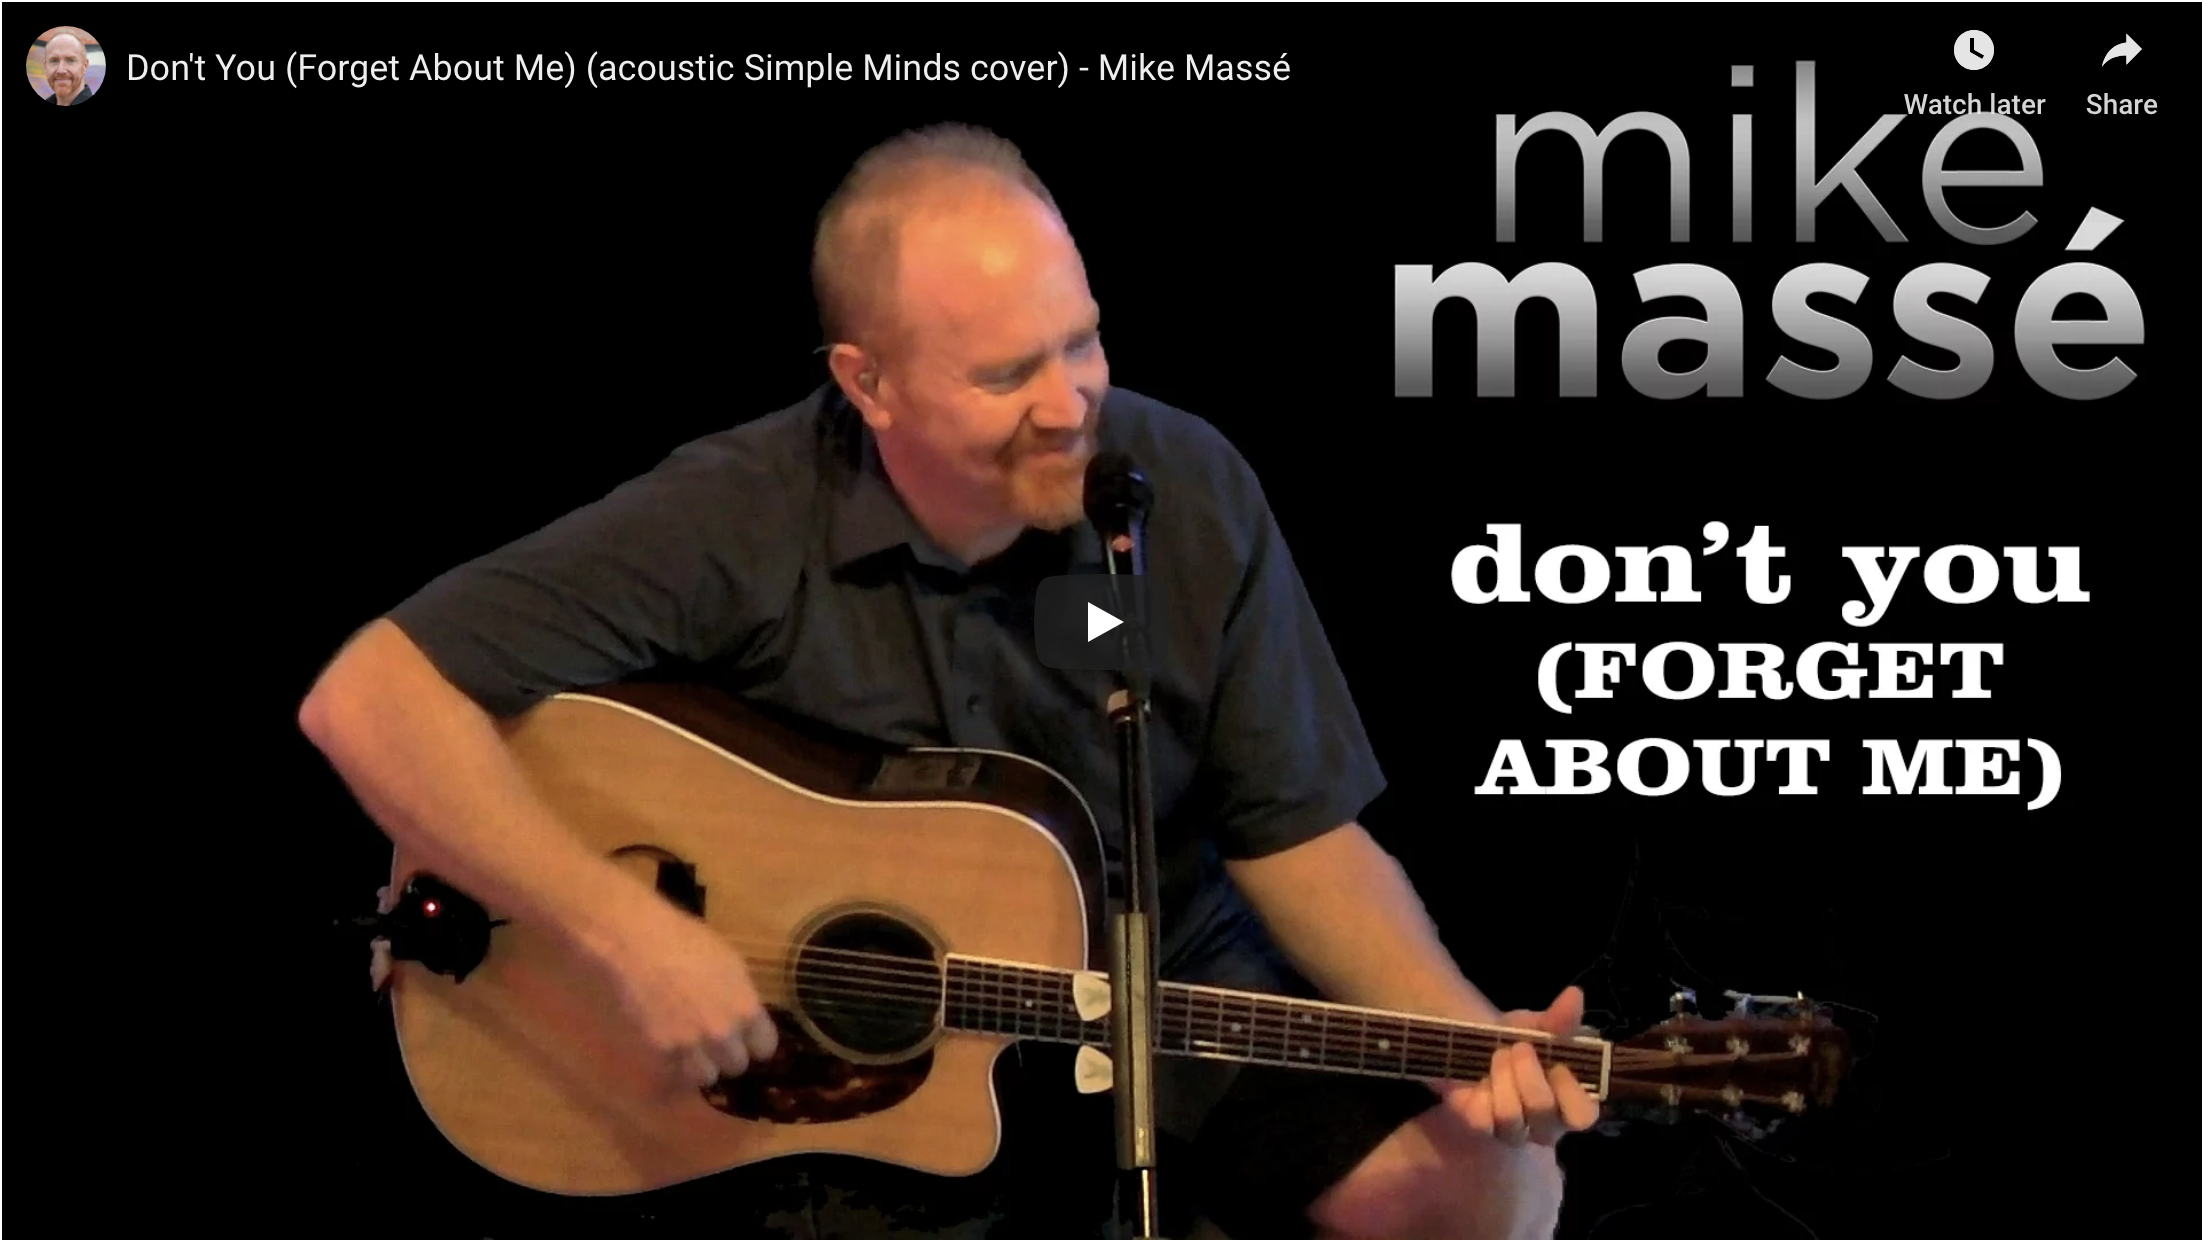 Don't You (Forget About Me) - Simple Minds acoustic cover by Mike Massé